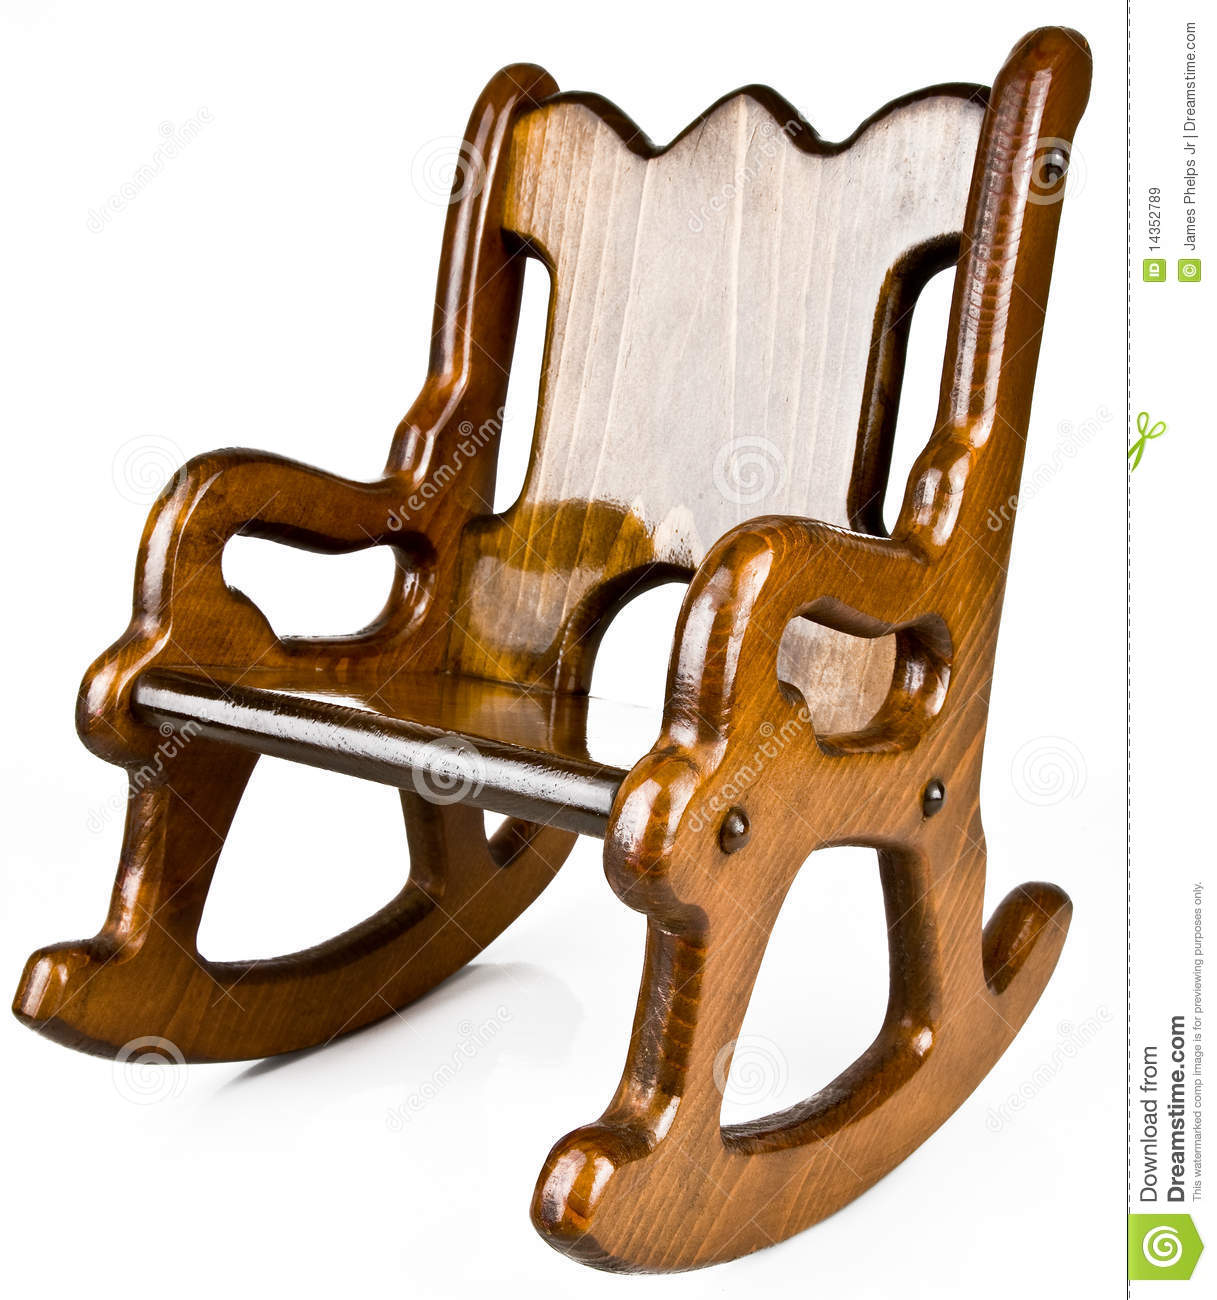 Child 39 s solid wood rocking chair stock image image of for Rocking chair design plans